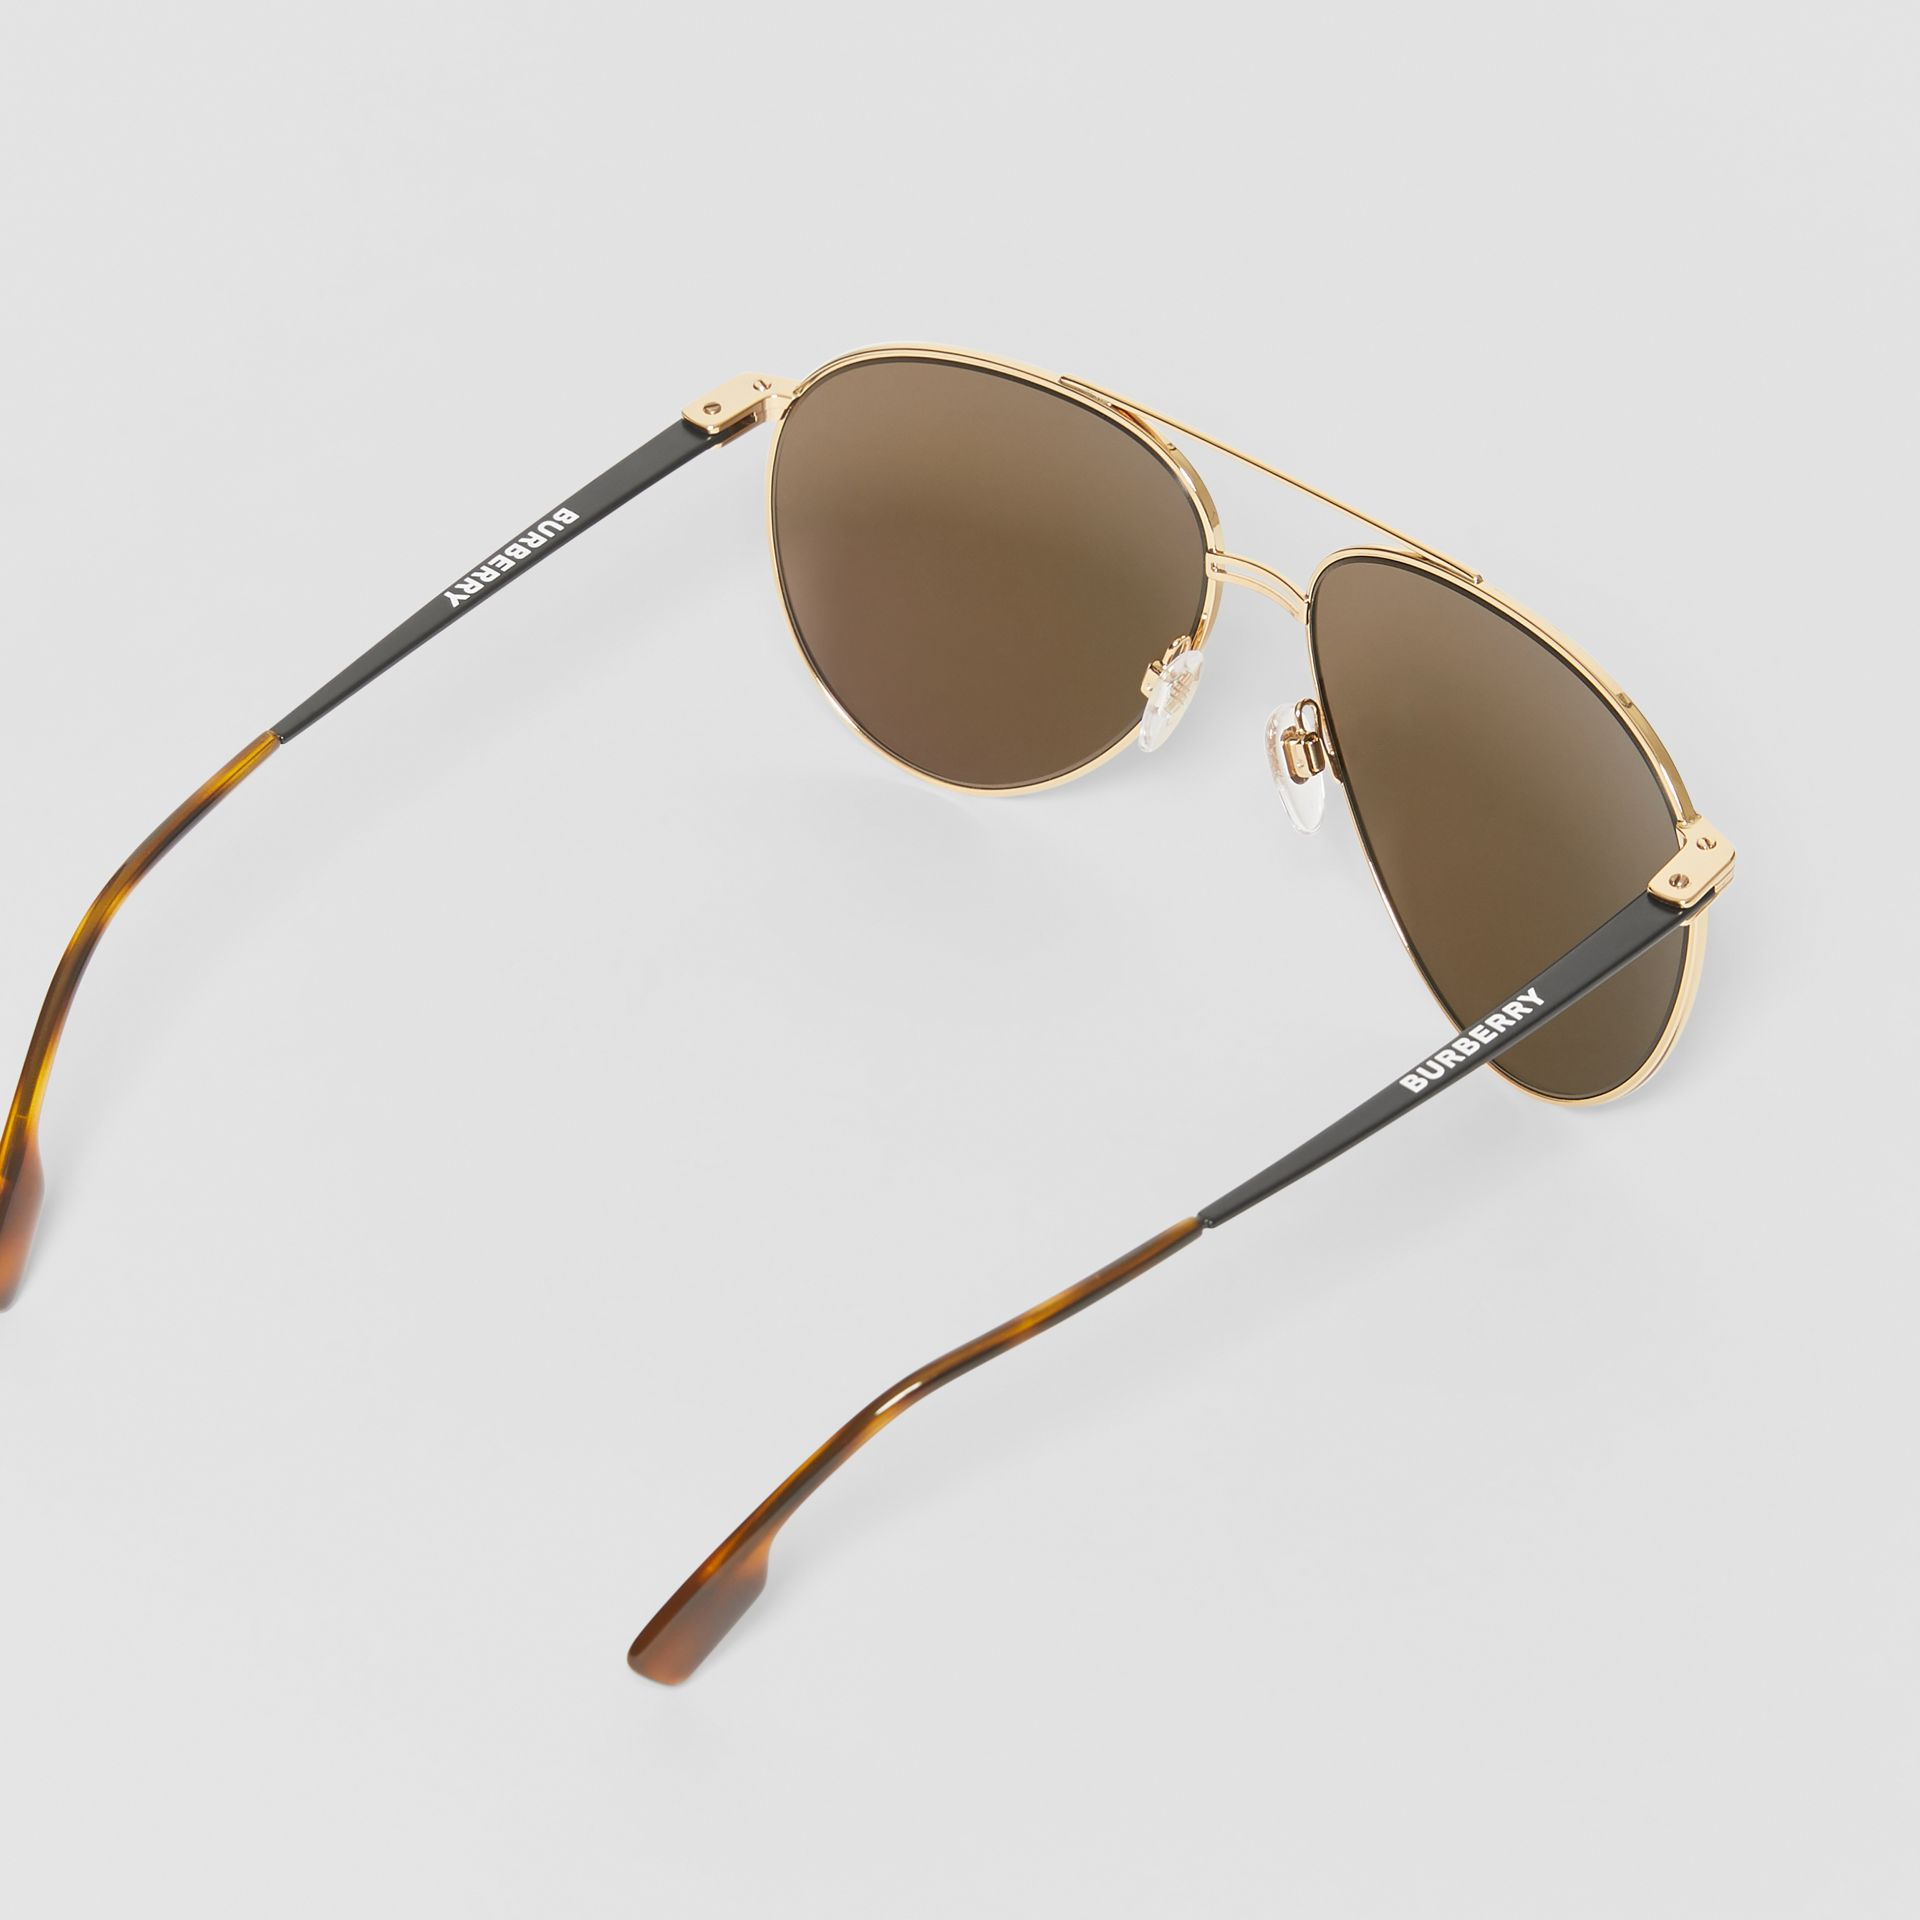 Top Bar Detail Pilot Sunglasses in Gold - Men | Burberry - gallery image 4